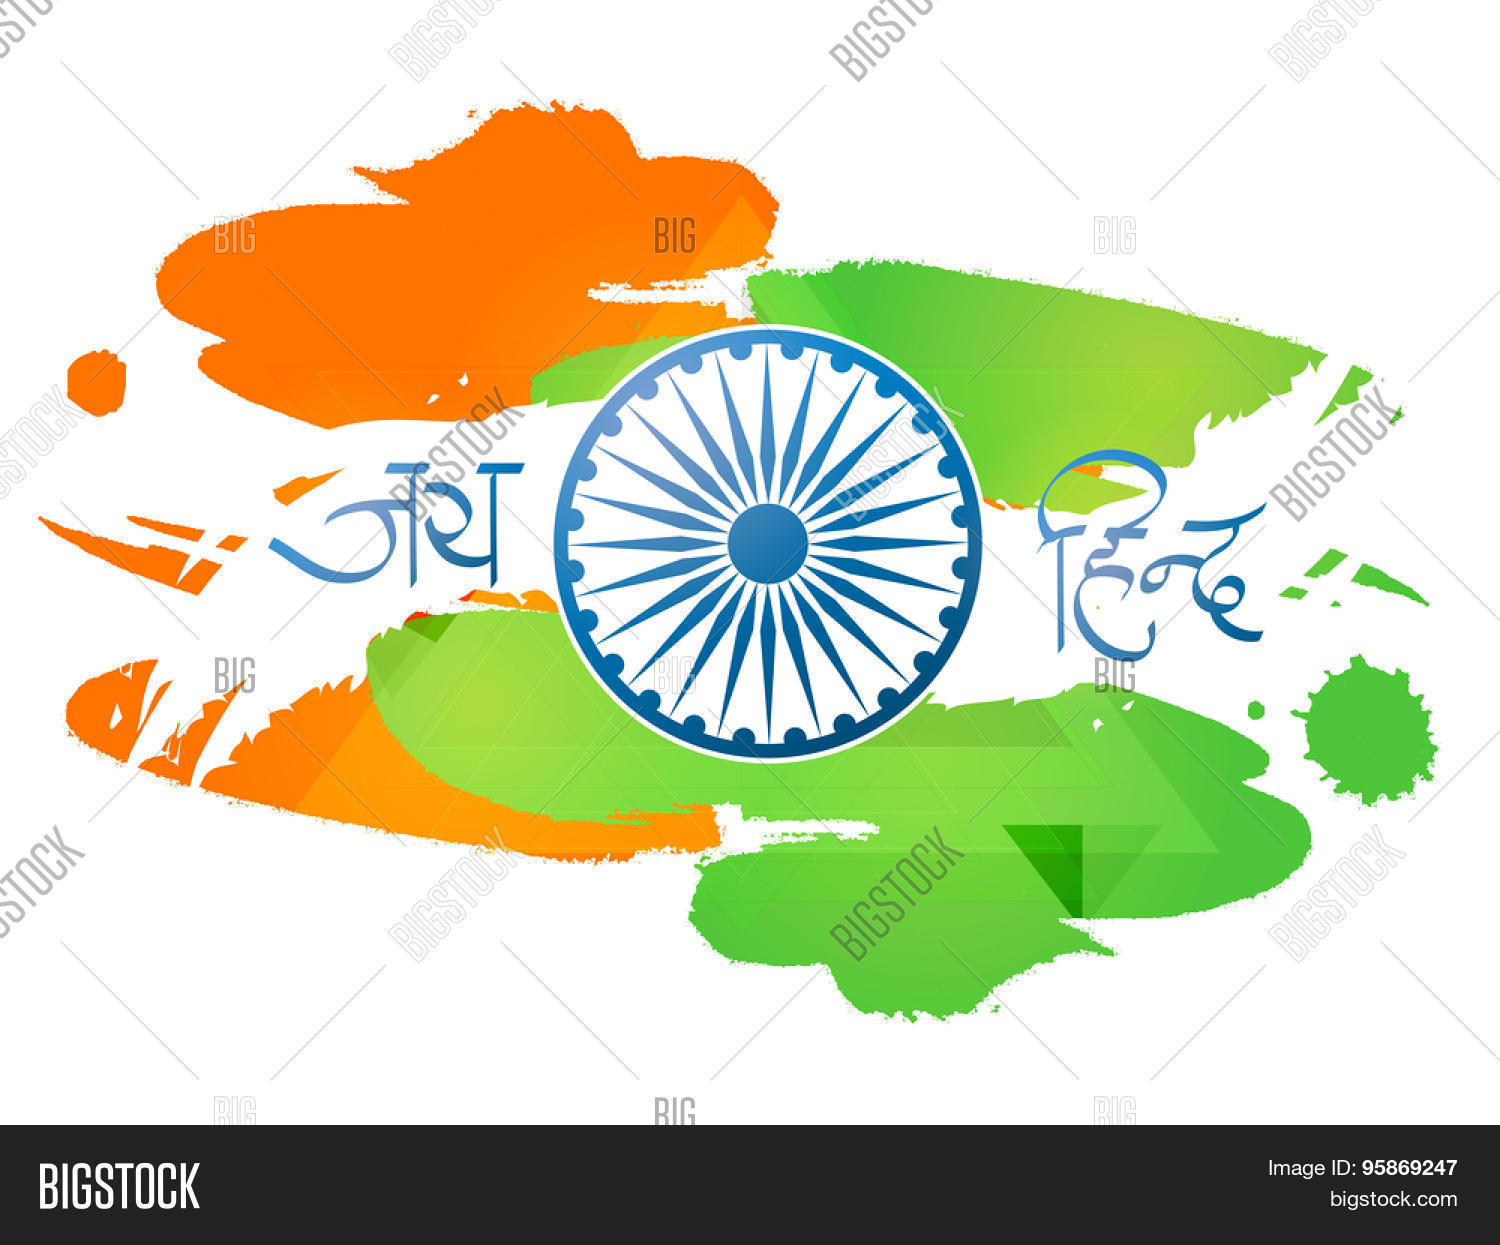 n flag colors in hindi coloring shiny national flag colors ashoka wheel and hindi text jai hind victory to